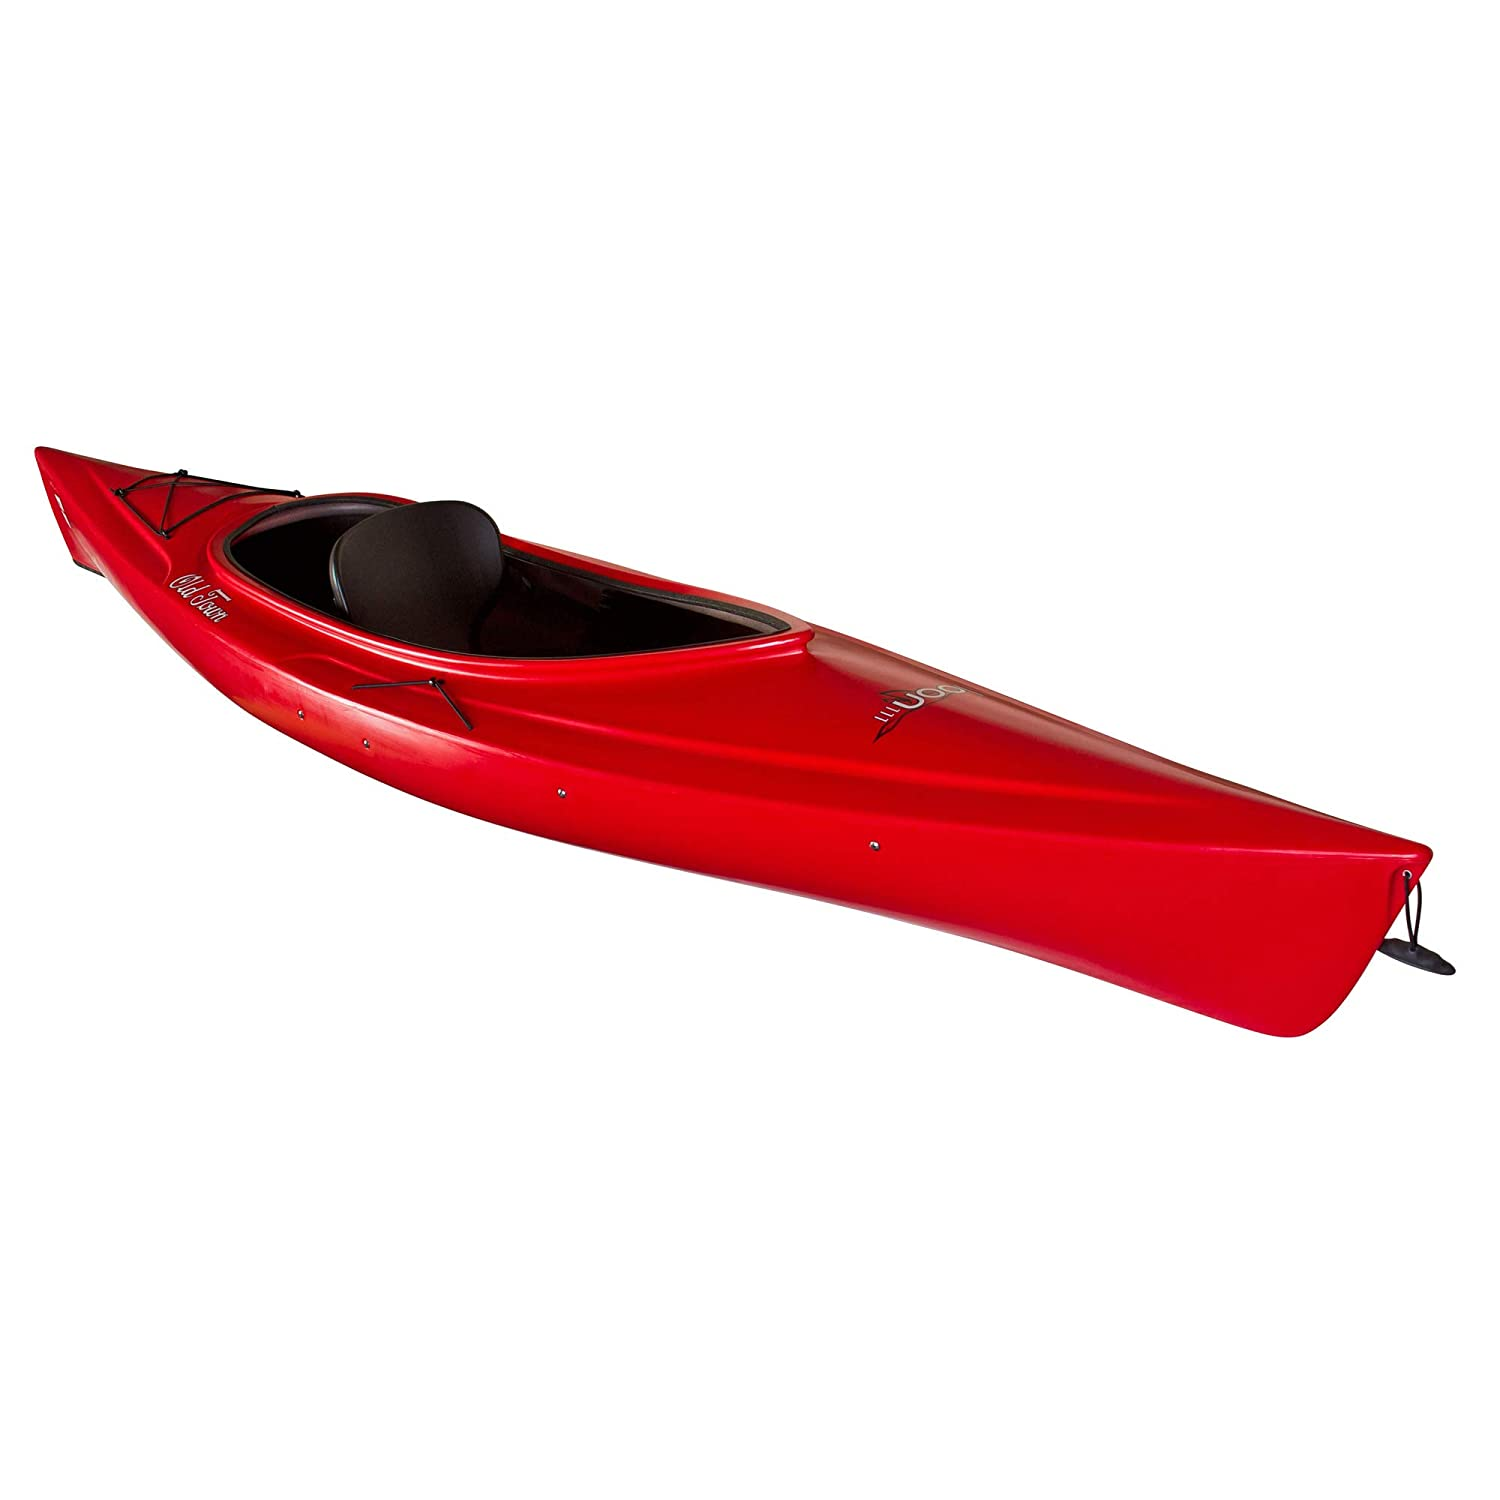 Old Town Loon 111 Recreational Kayak, 11 Feet 1 Inches